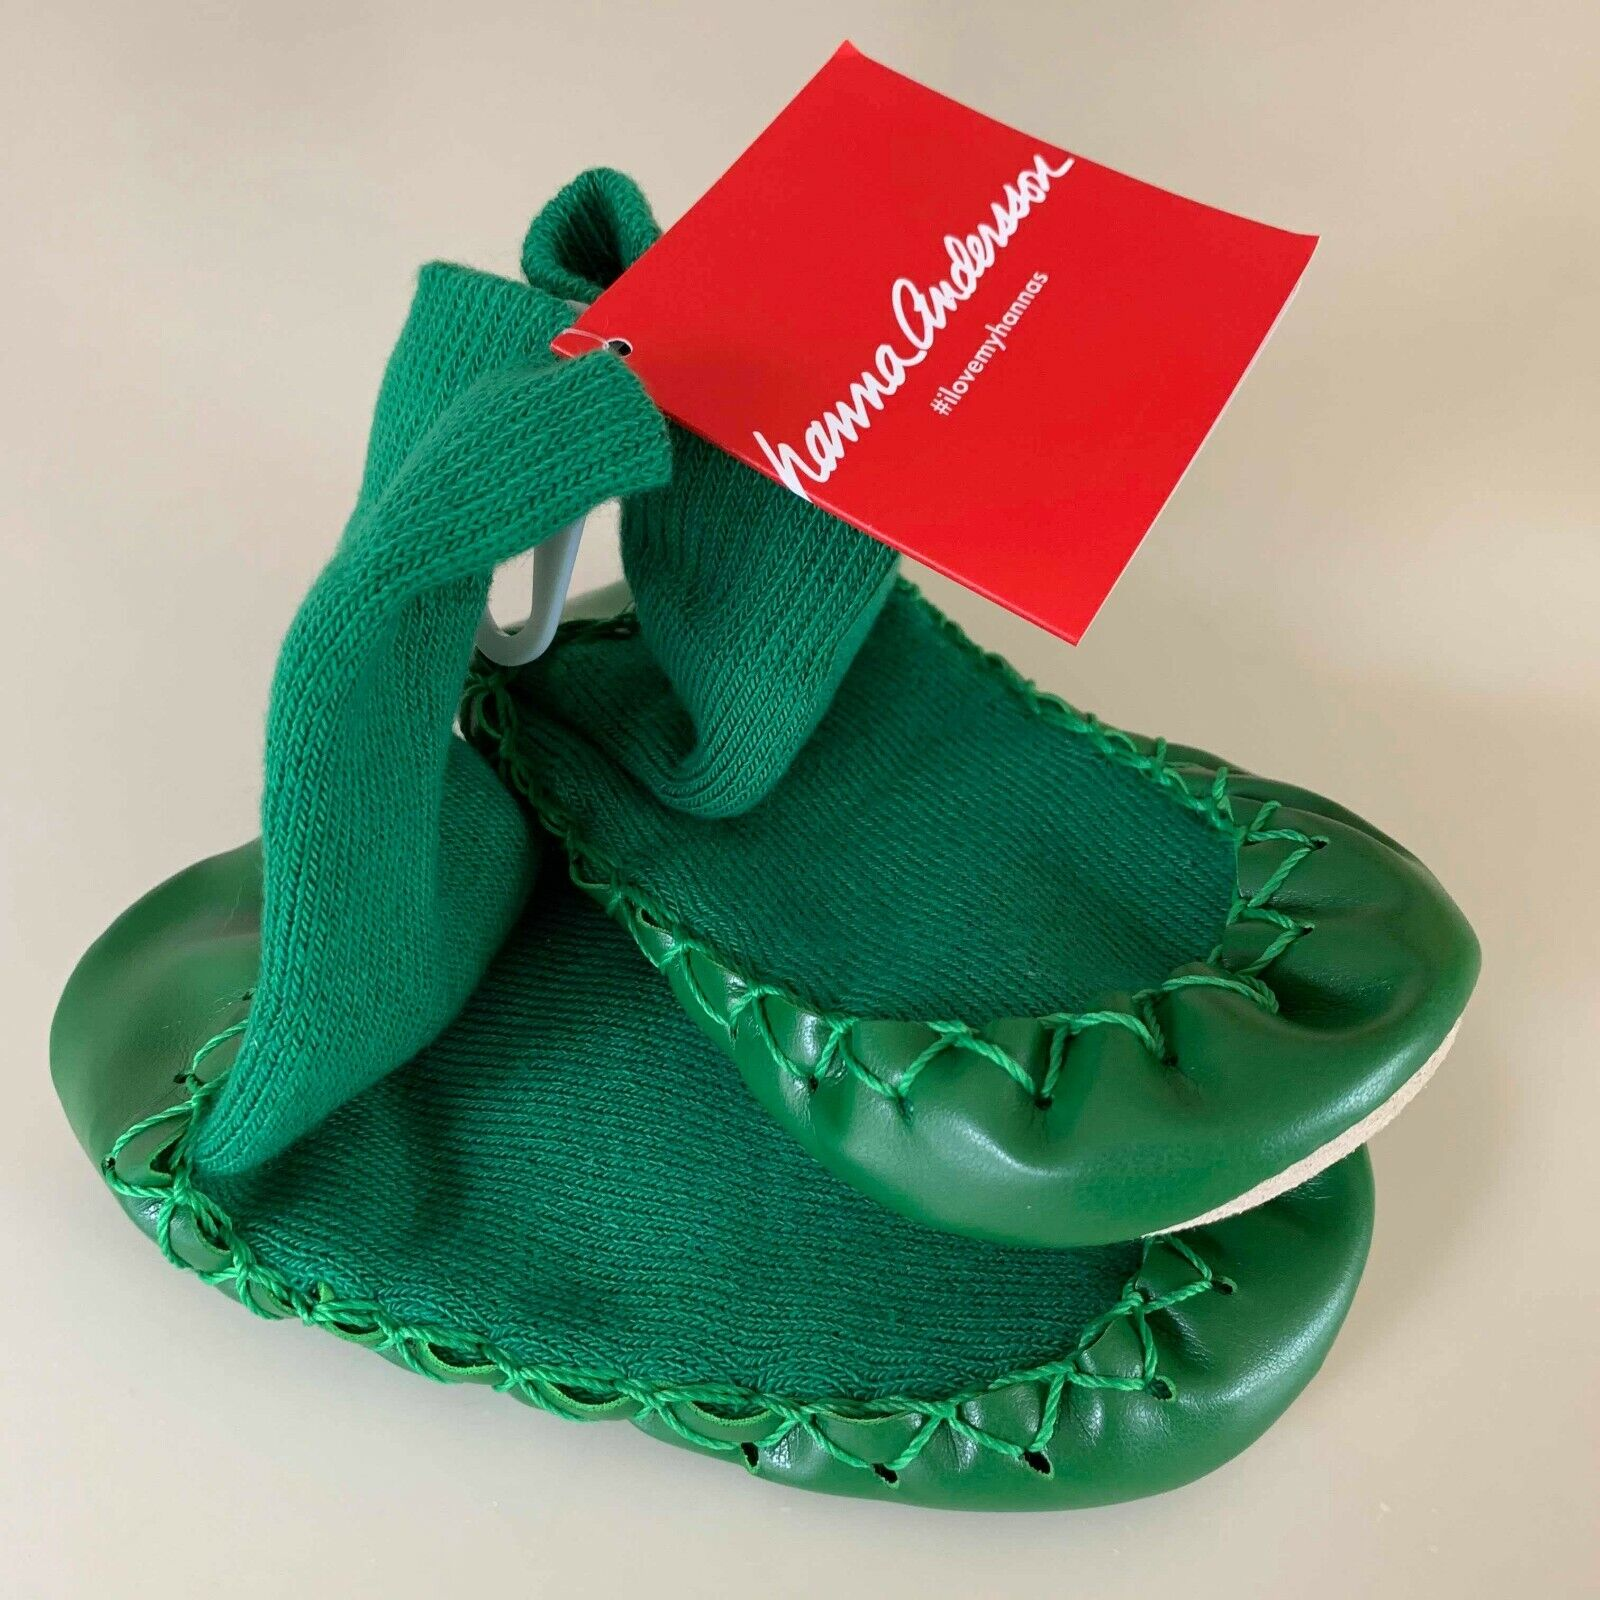 HANNA ANDERSSON Boys GREEN Moccasins Slippers. Size 12-1 Y